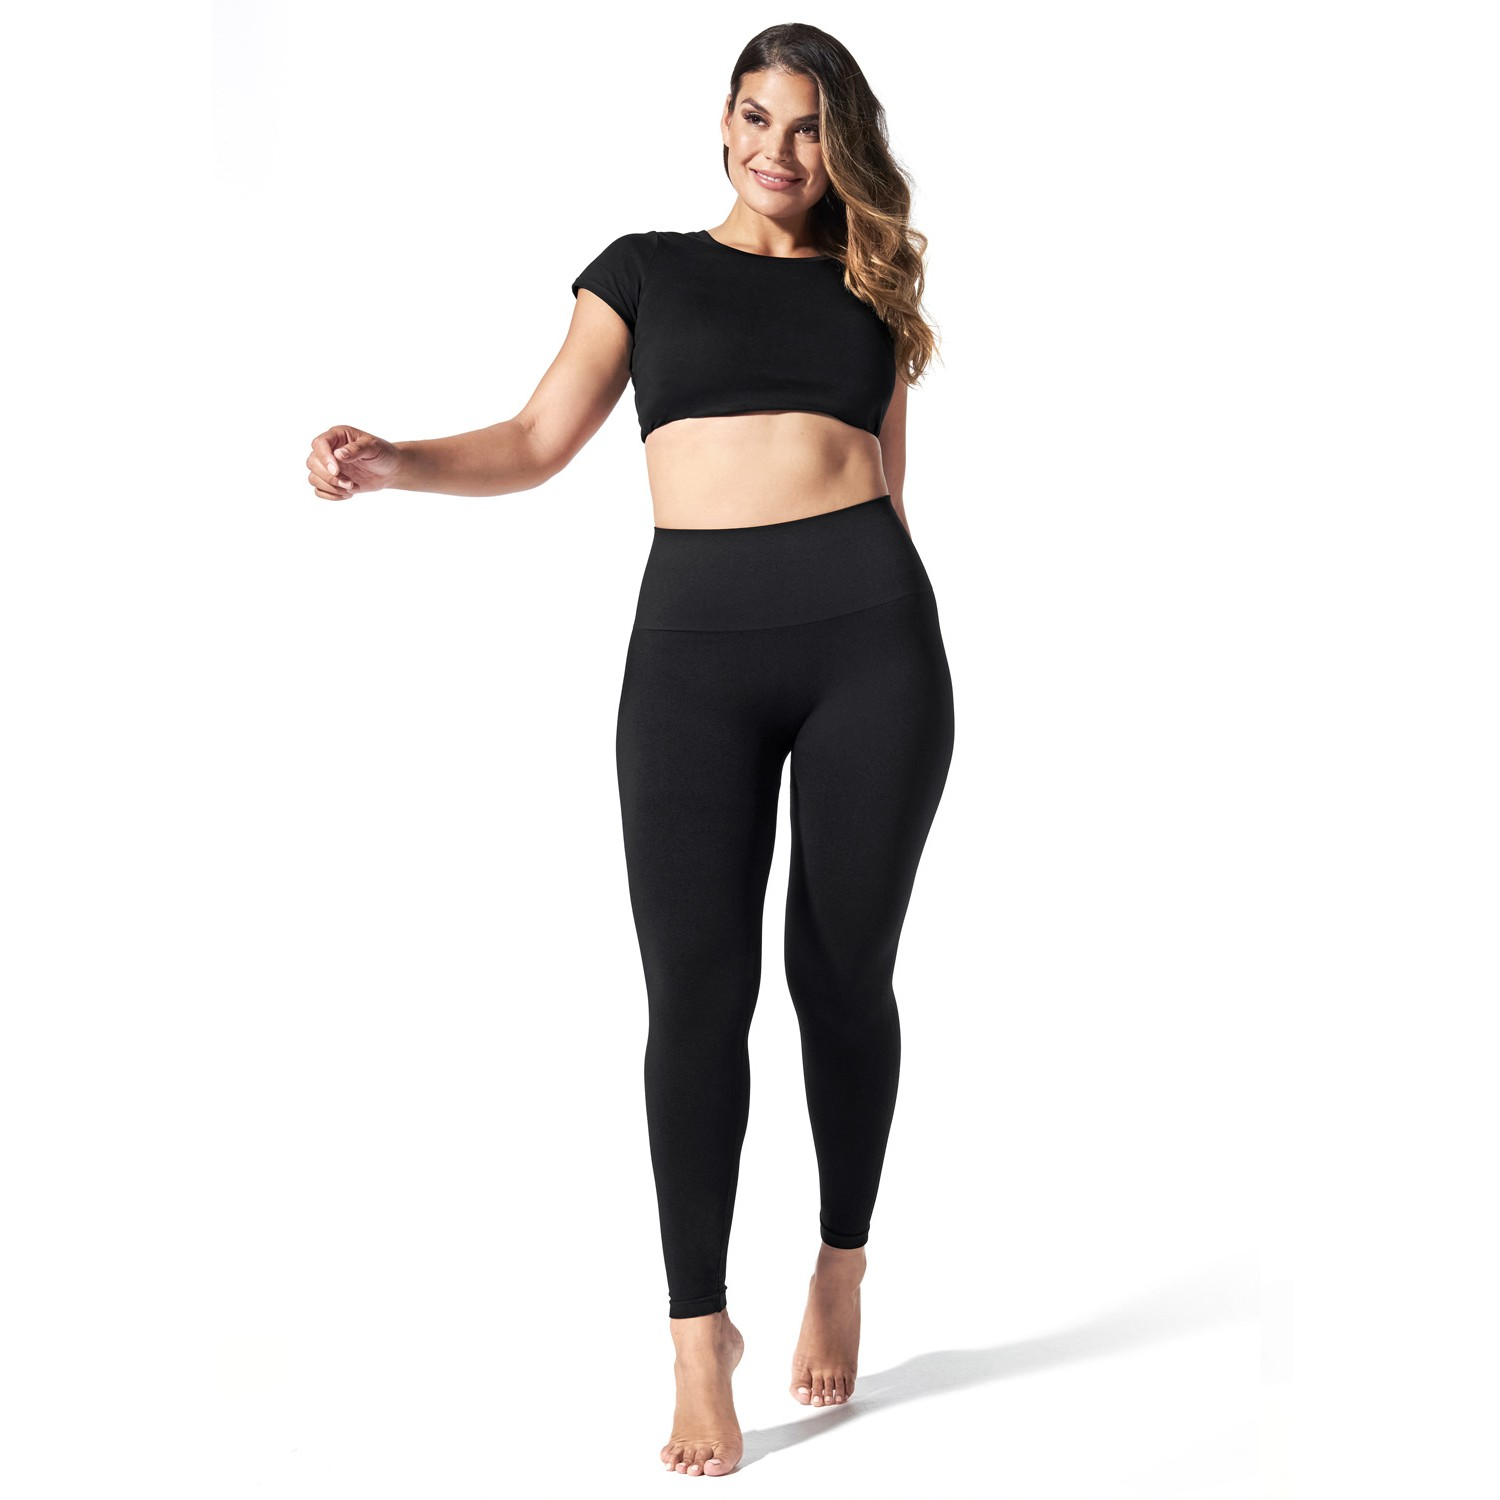 BLANQI EVERYDAY™ HIPSTER SUPPORT LEGGINGS